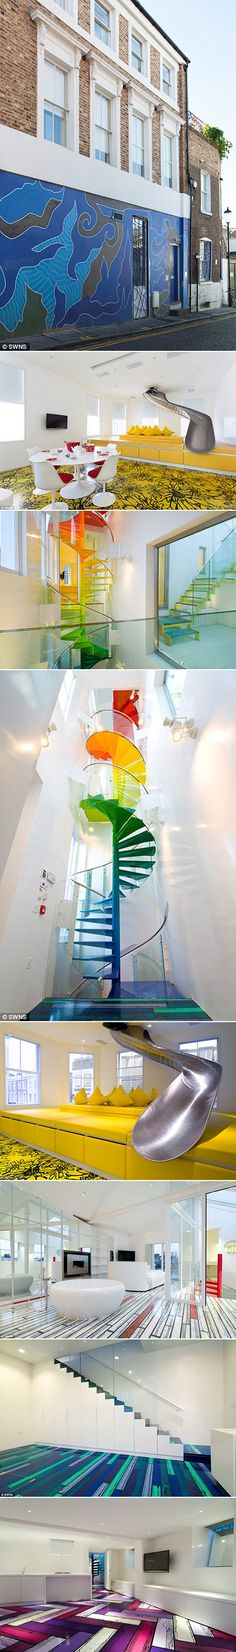 One of Britain's most fun homes, where you enter the living room through a slide, has been put on the rental market for £15,000 a month. The Rainbow House was a classical four-bedroom town home which was transformed into a bright and unique design. Its wacky layout is the work of the designer AB Rogers who, in 2009, was given the brief of converting a home into a 'magical and liberating' space where you can leave the outside world behind.